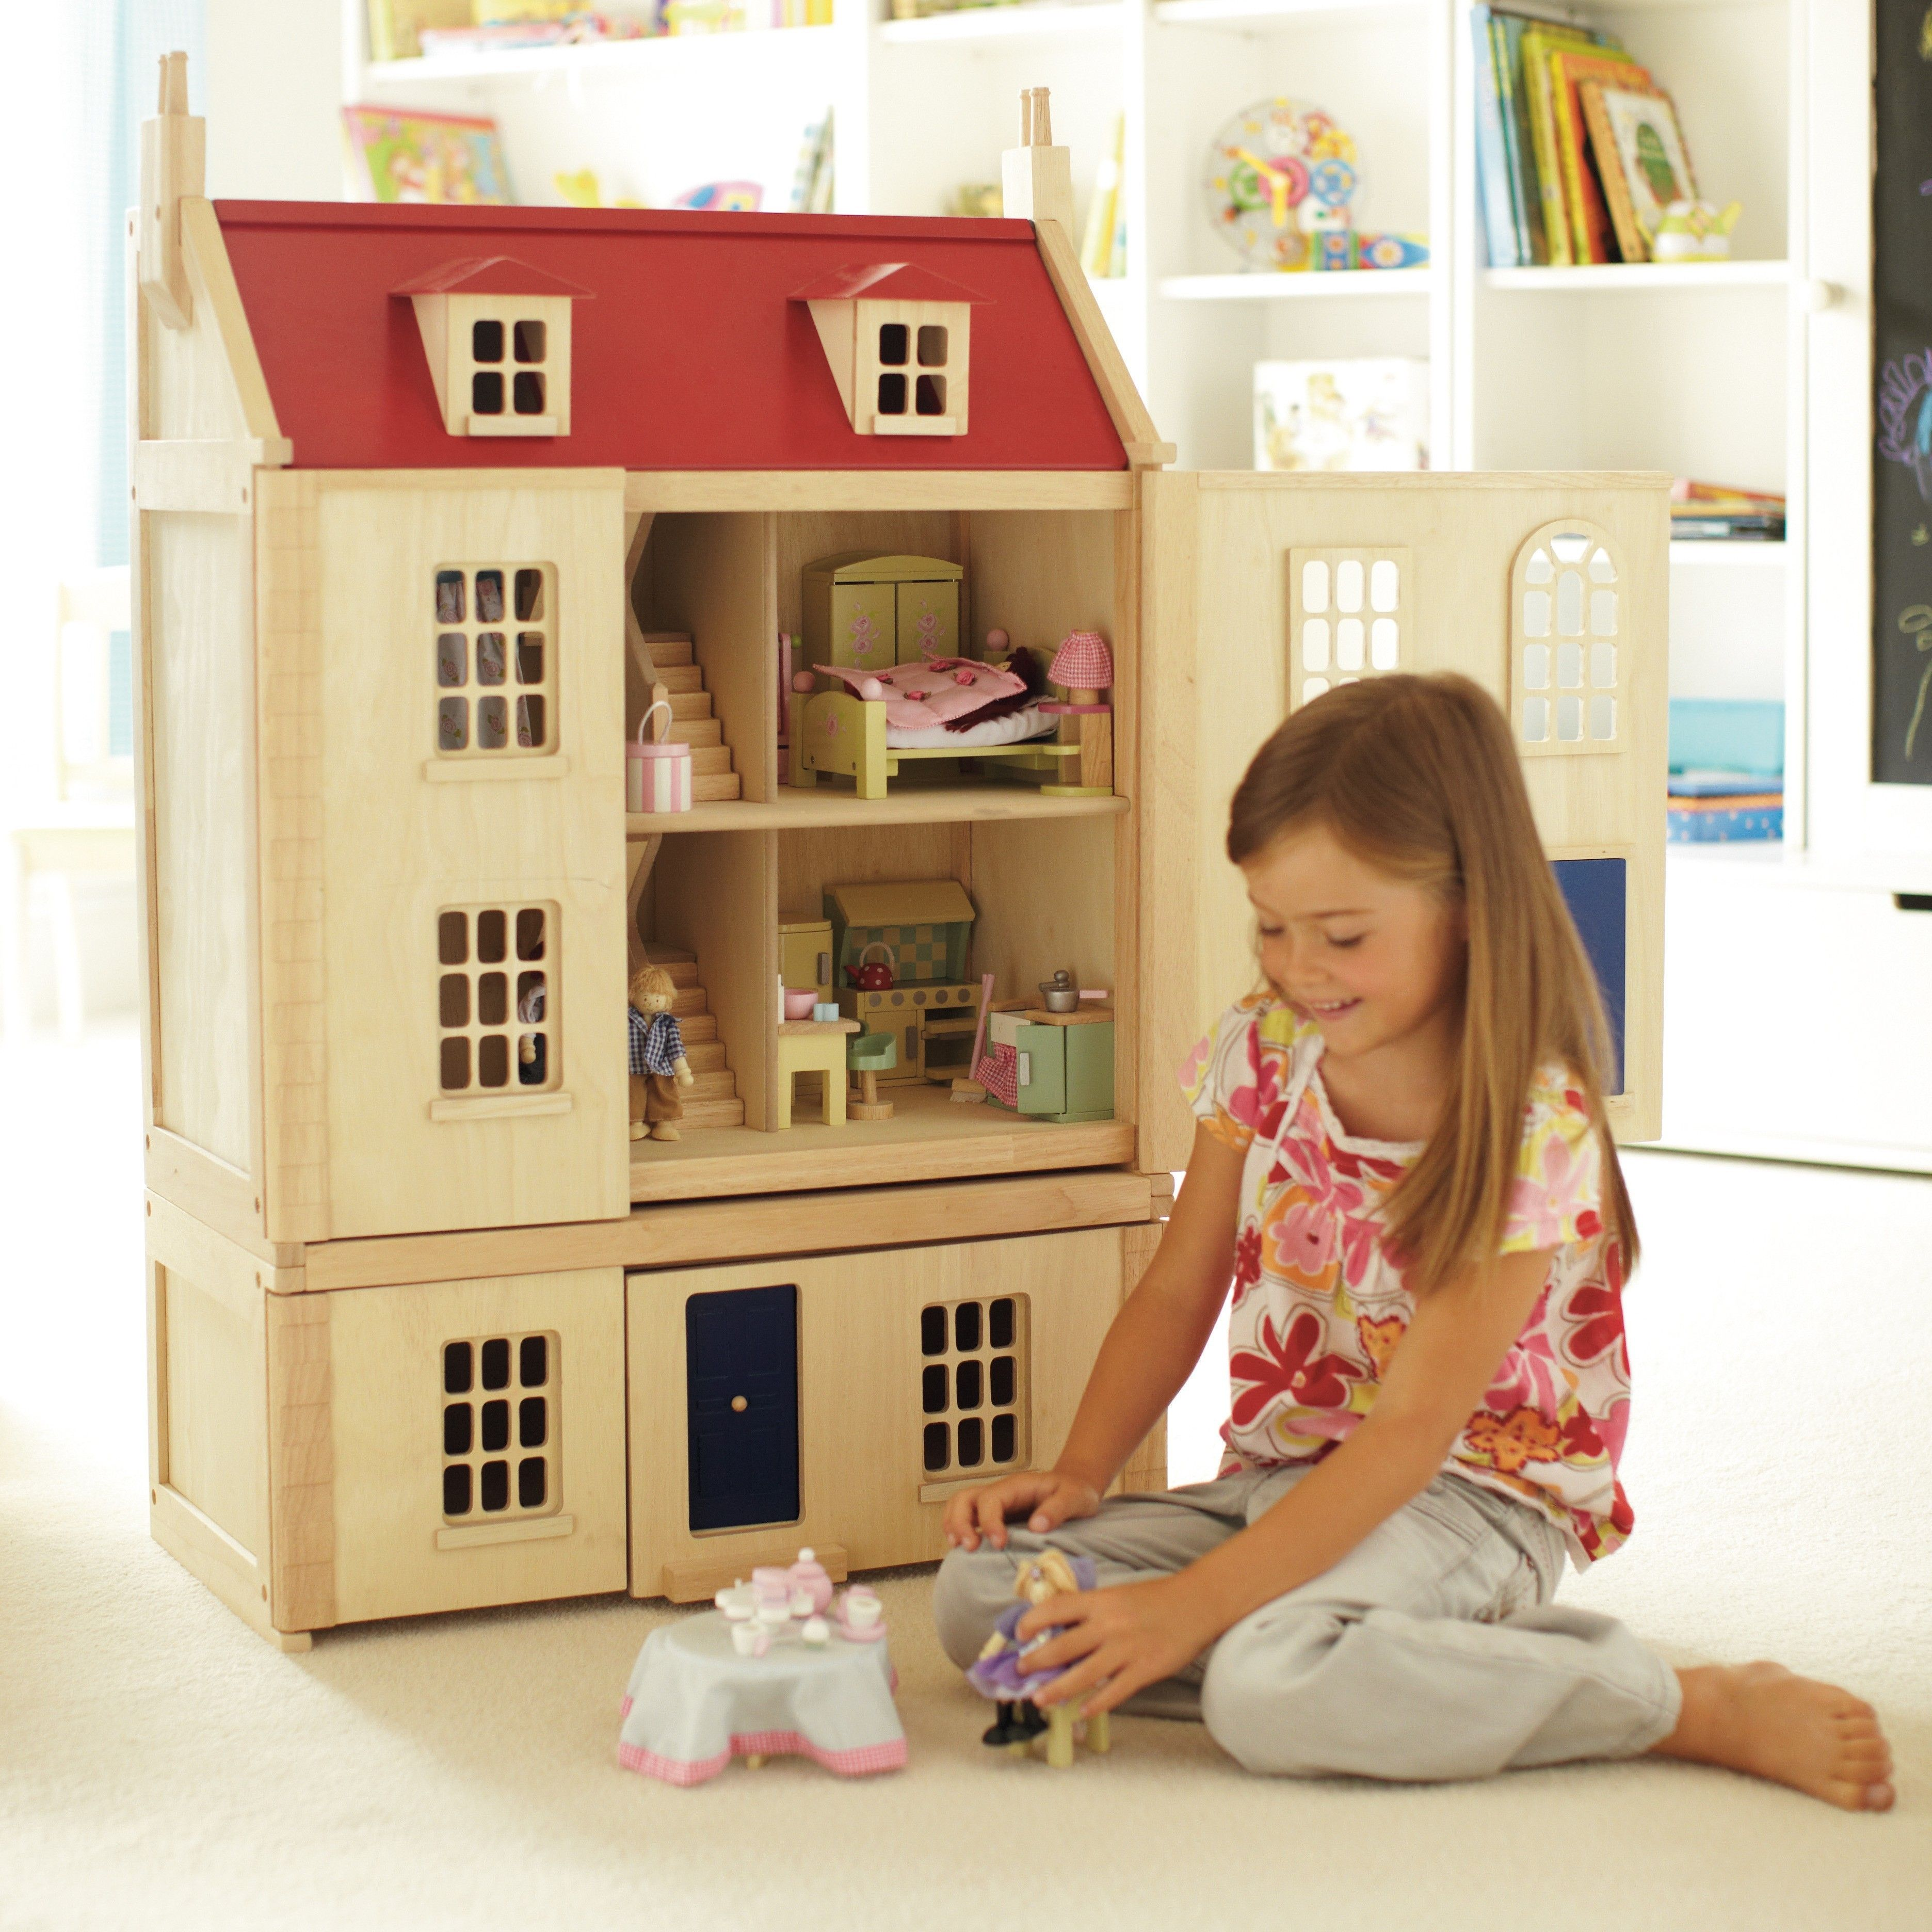 A Dream Home By Anyoneu0027s Standards, This Stunning Wooden Dolls House Comes  Complete With With